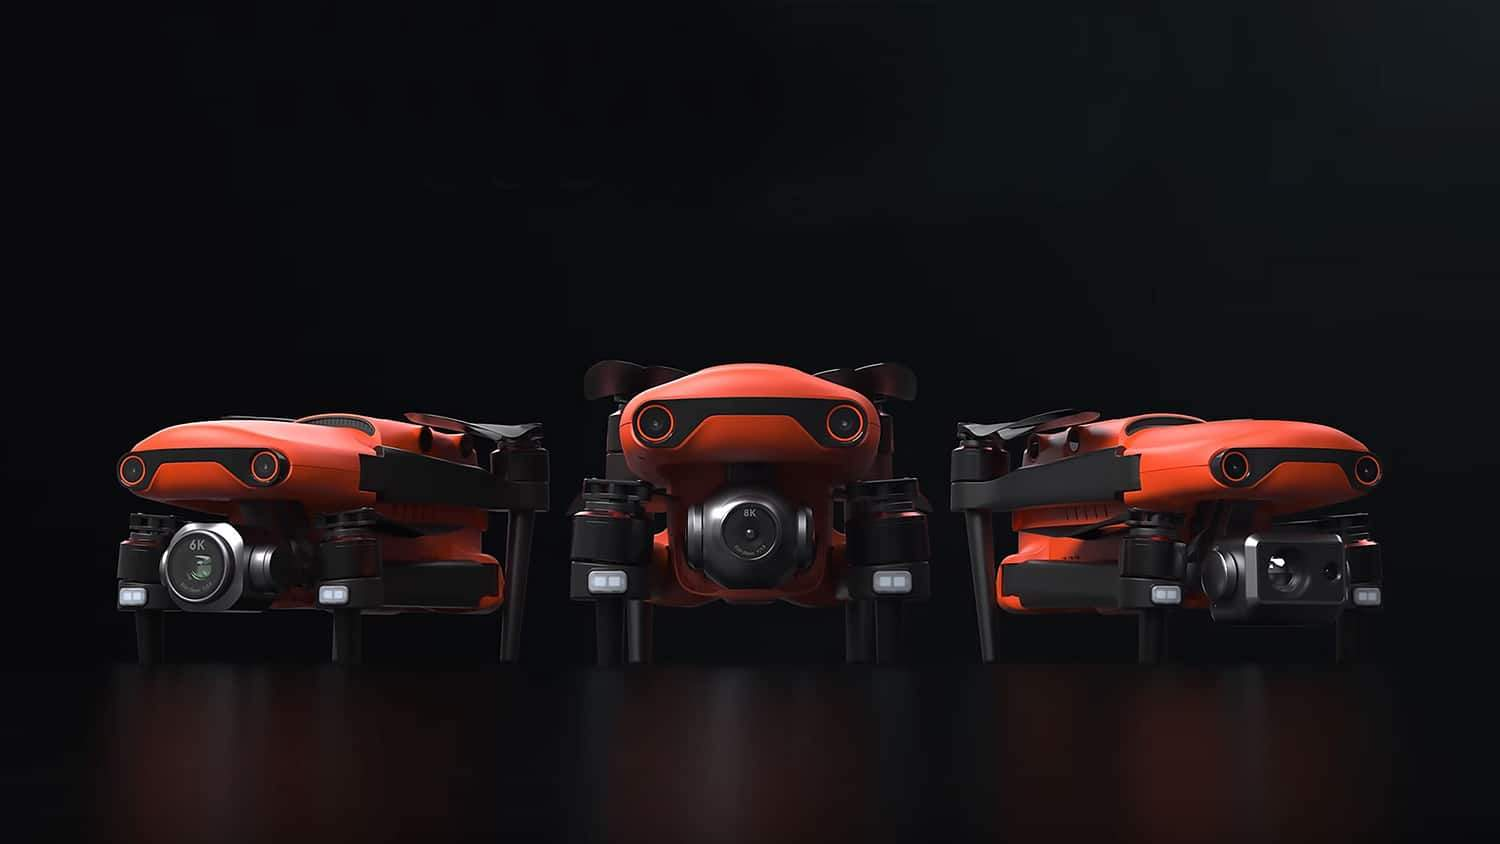 Autel Robotics EVO II Drones are shaking up the drone market